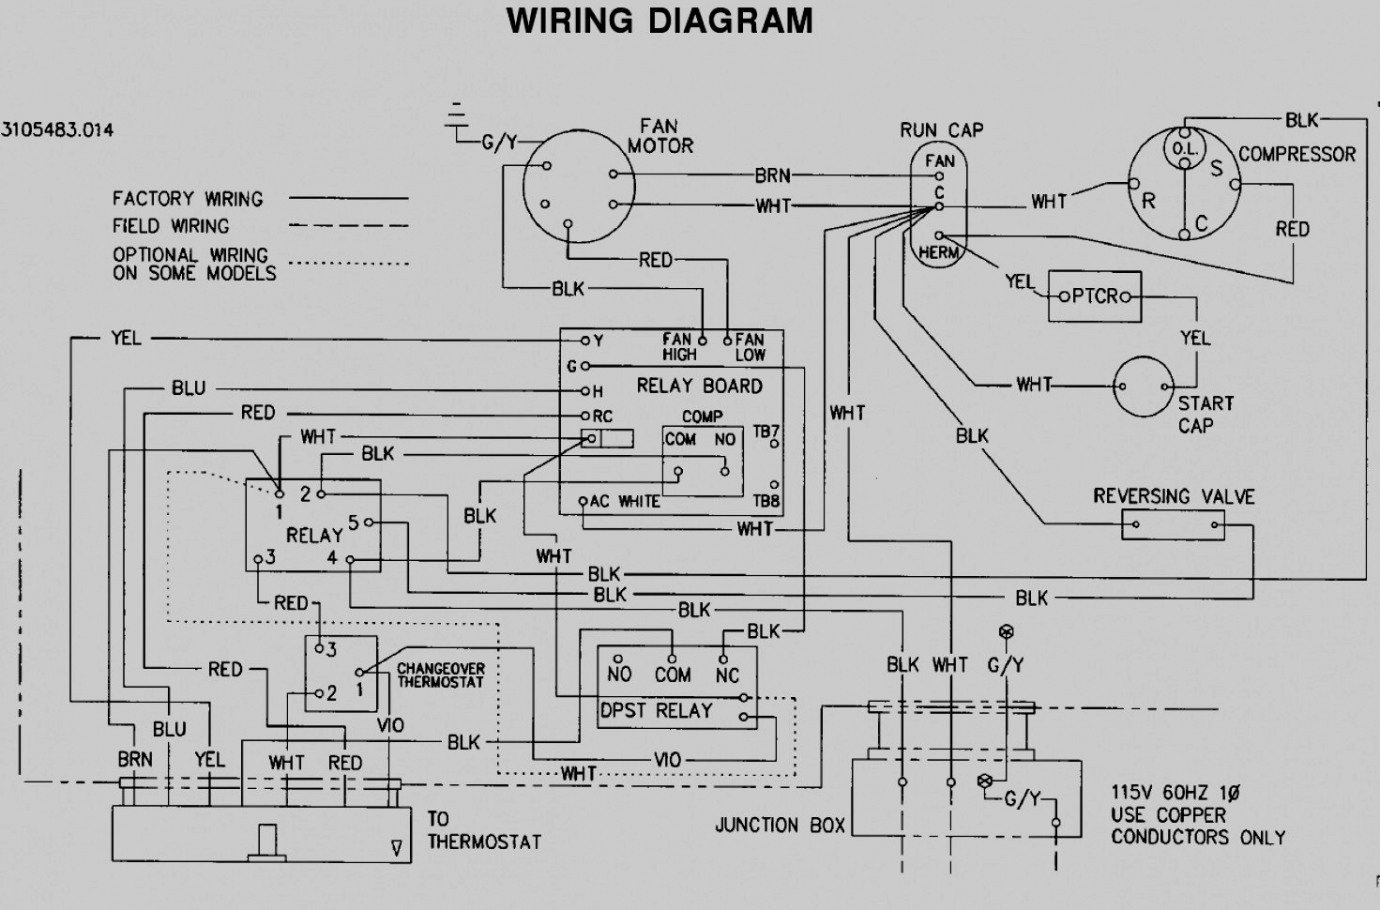 Dometic Thermostat Wiring Diagram | Manual E-Books - Dometic Rv Thermostat Wiring Diagram